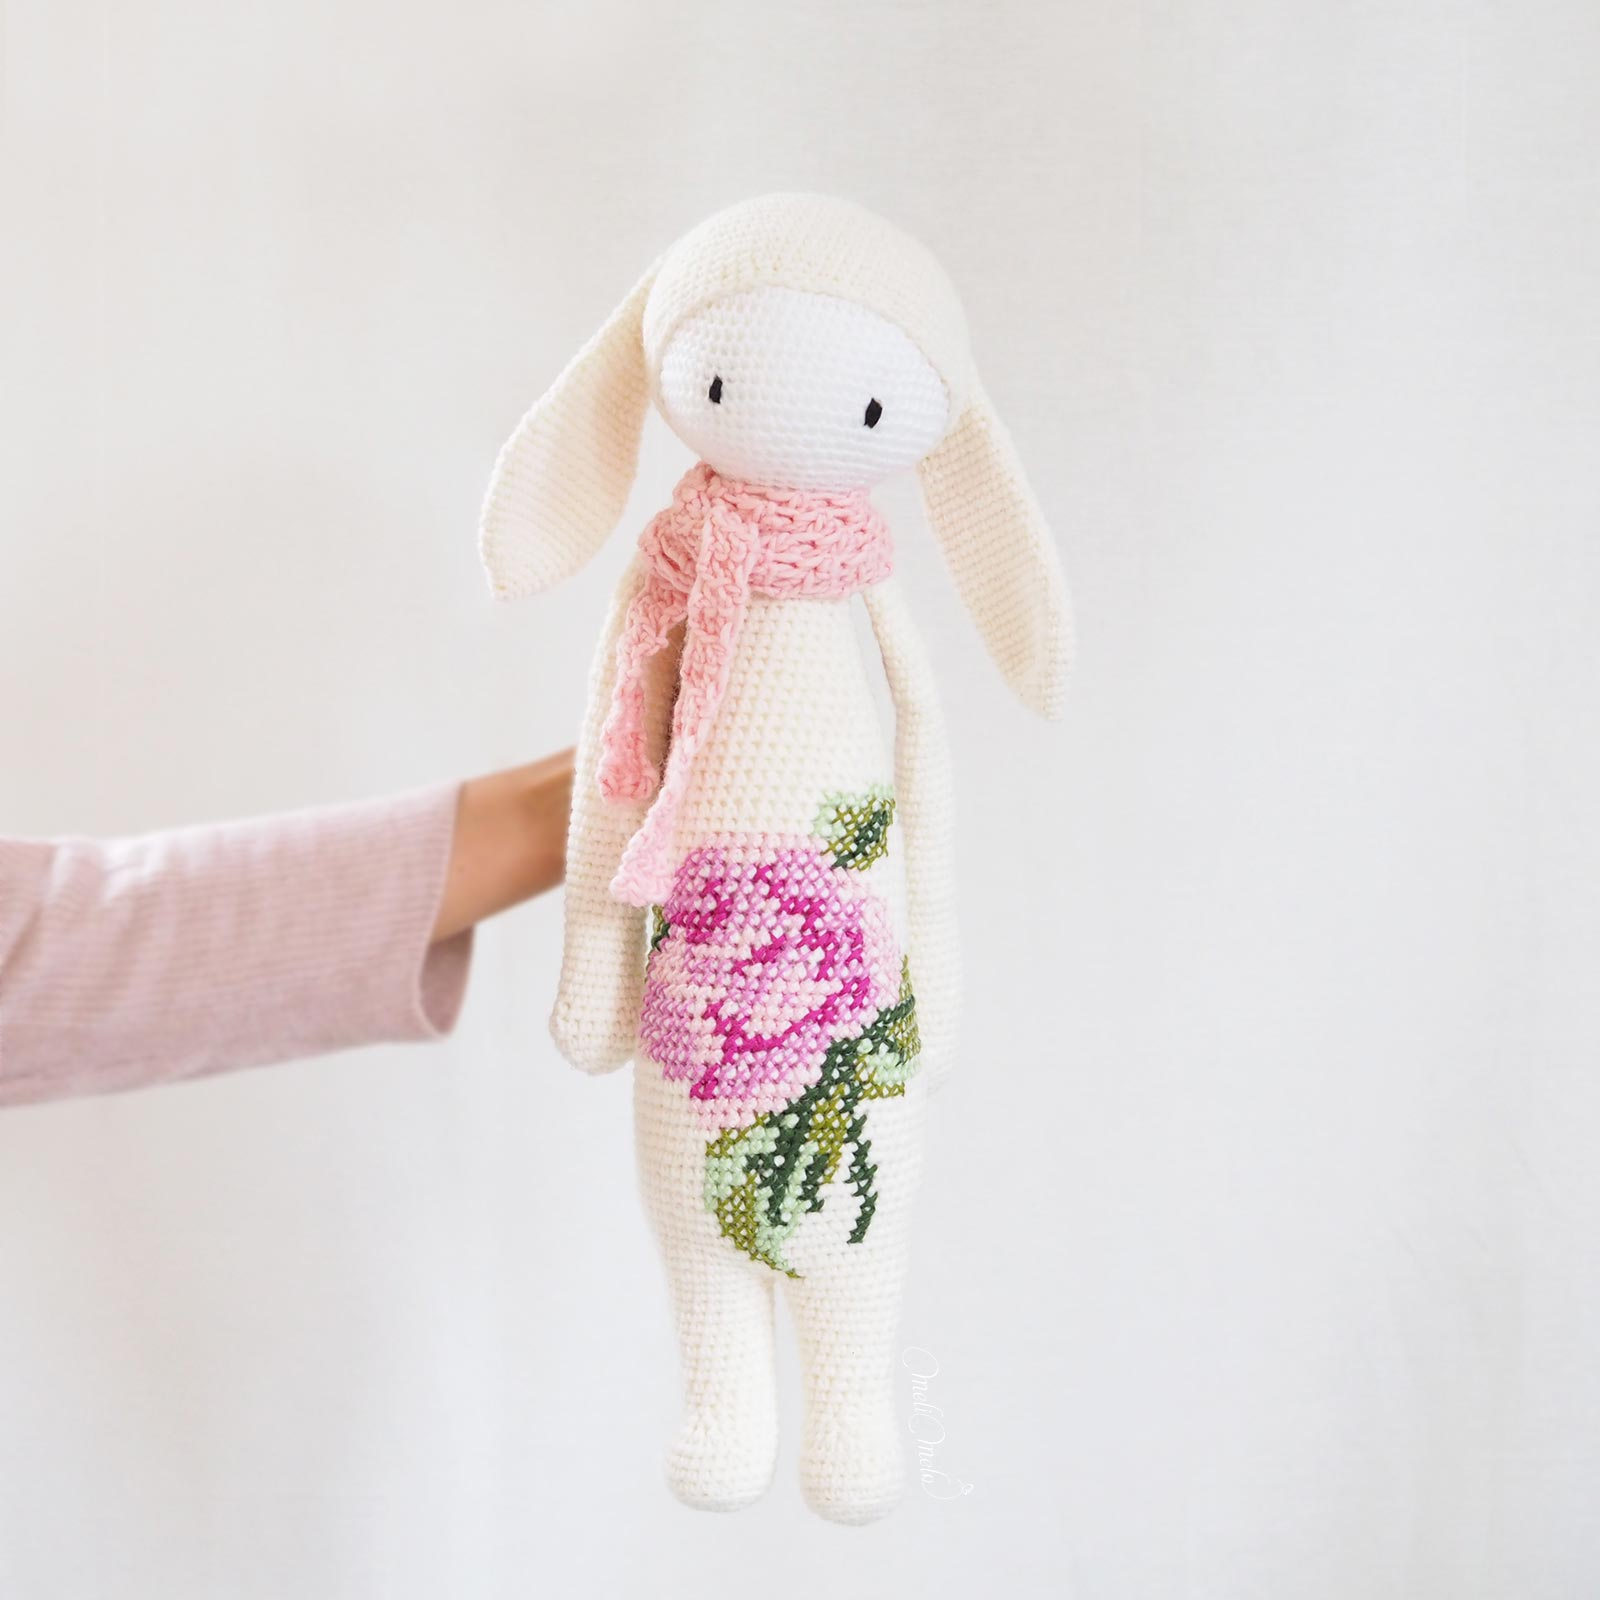 taille mesure crochet lapine bunny rita Lalylala bouquet rose laine alpaca chunky ricodesign laboutiquedemelimelo